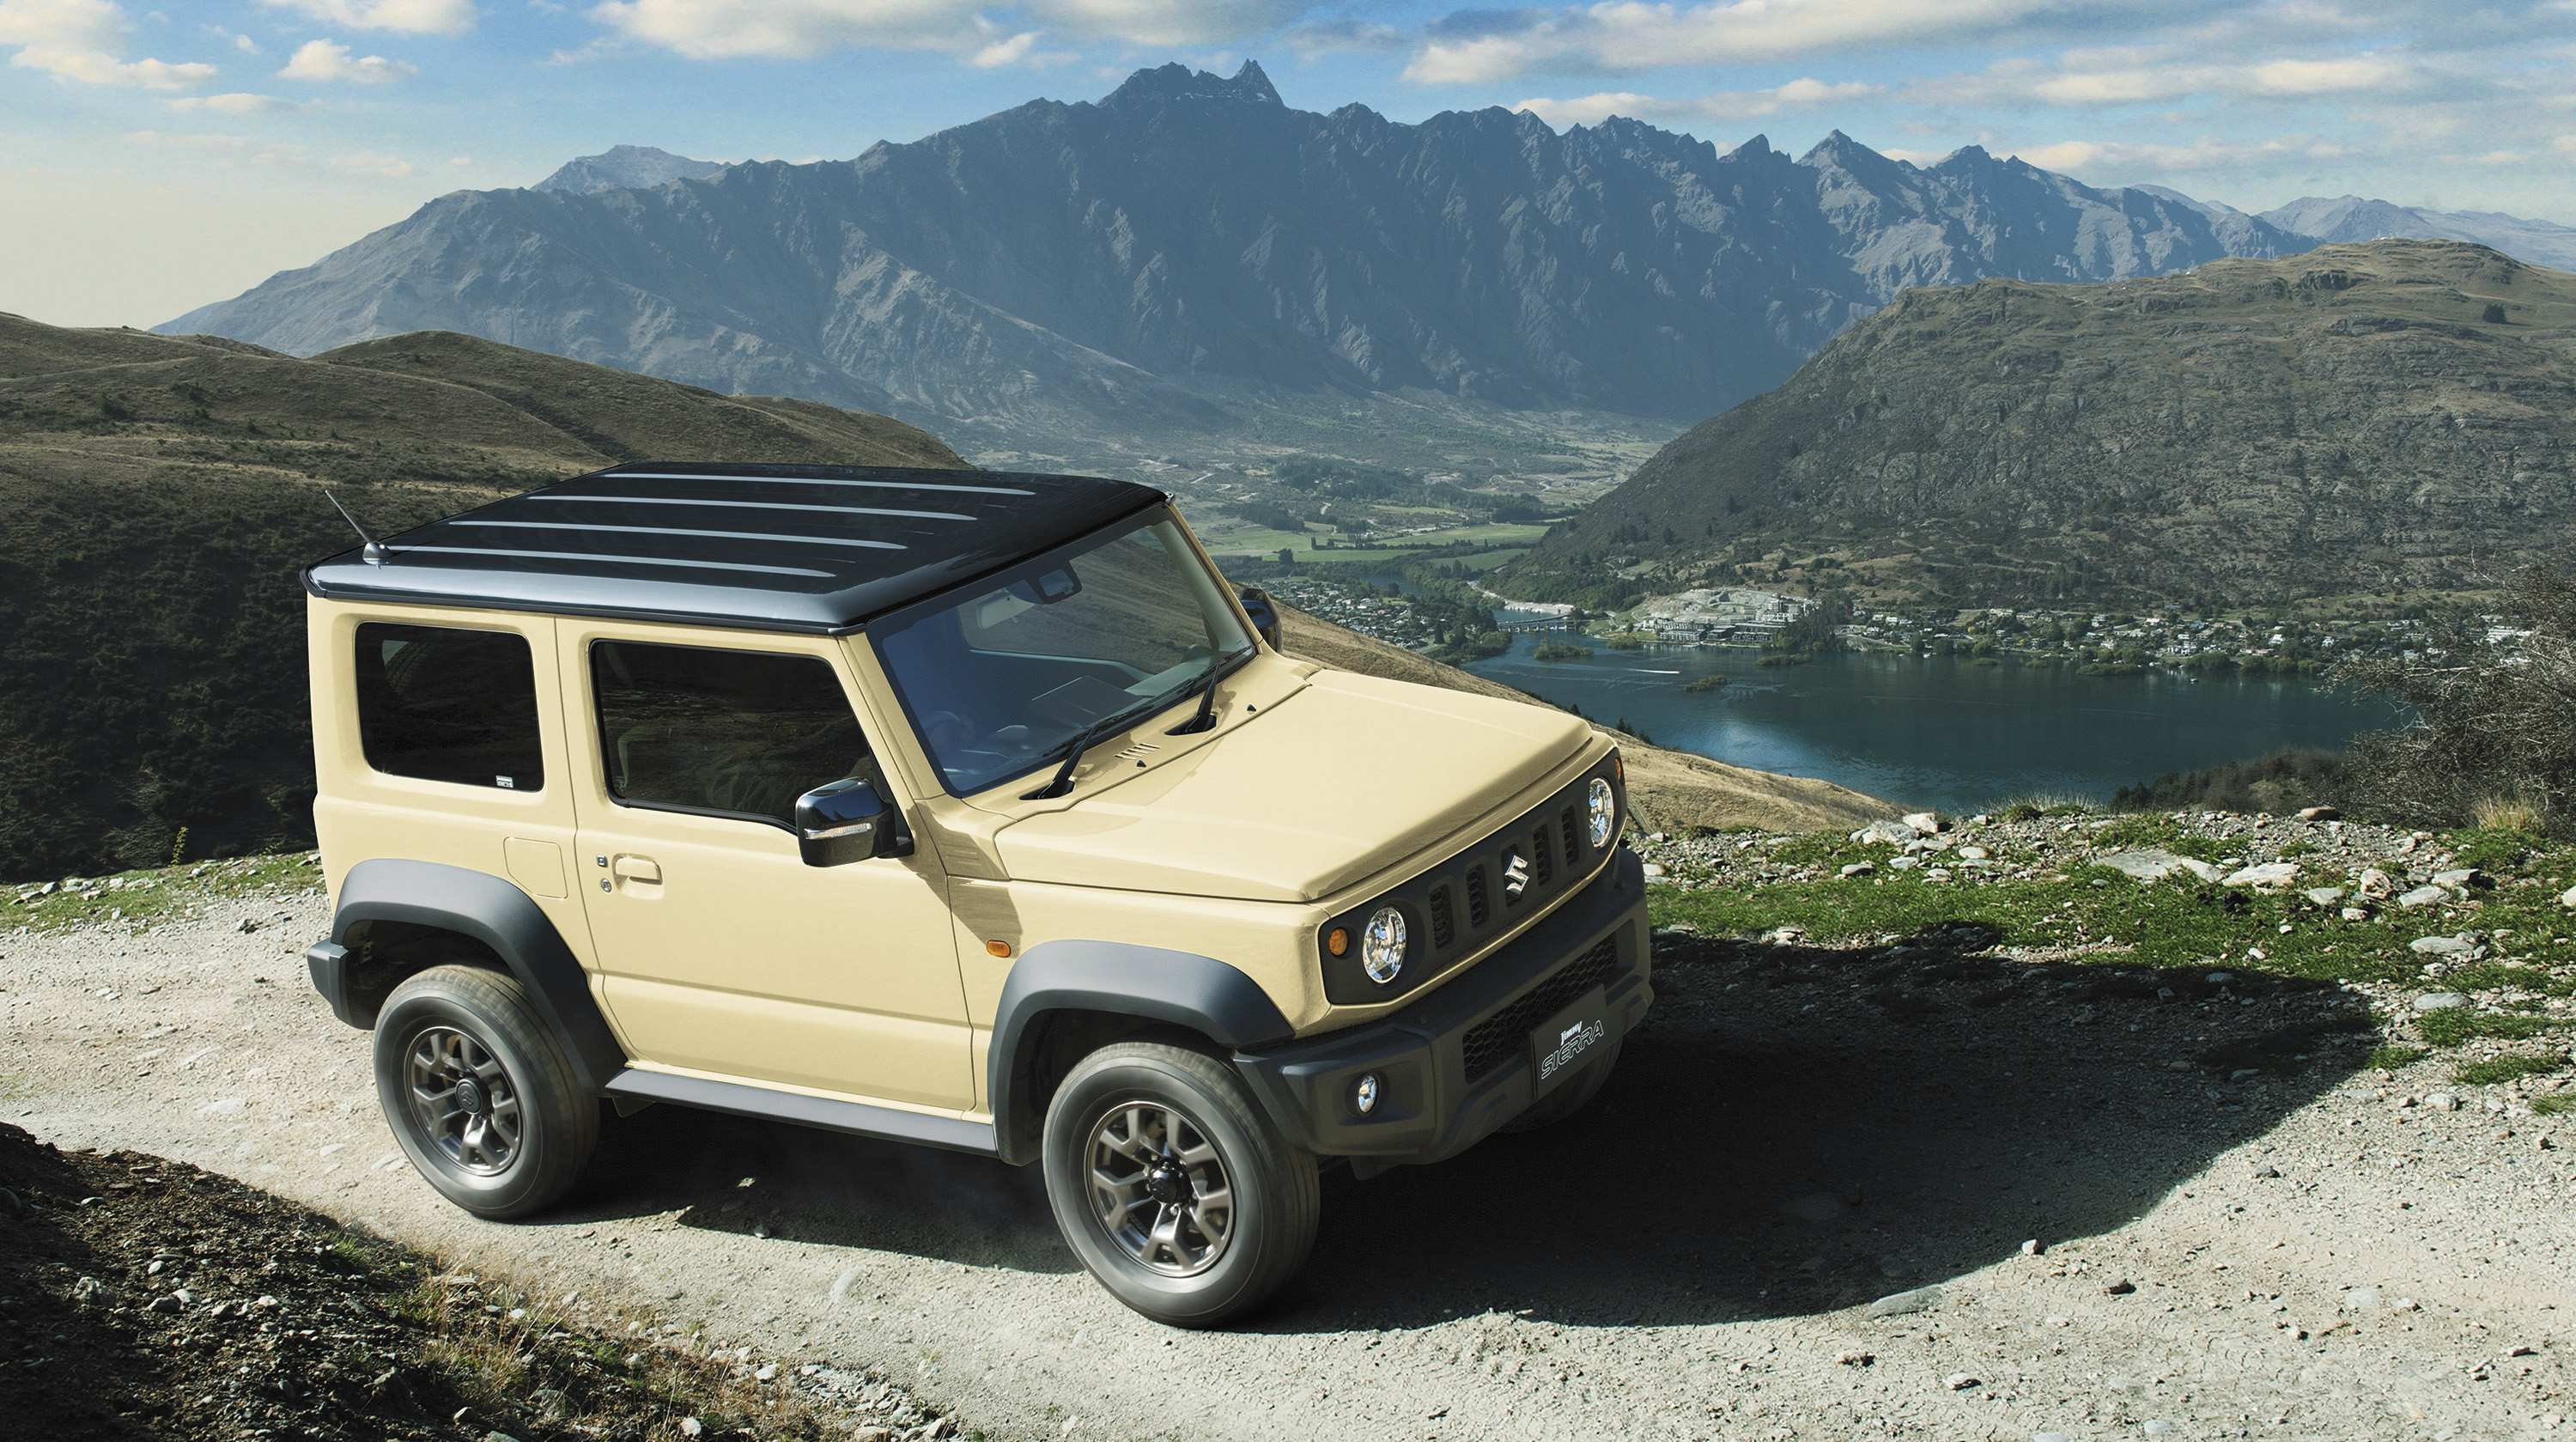 40 Great Suzuki Jimny 2020 Model Style for Suzuki Jimny 2020 Model